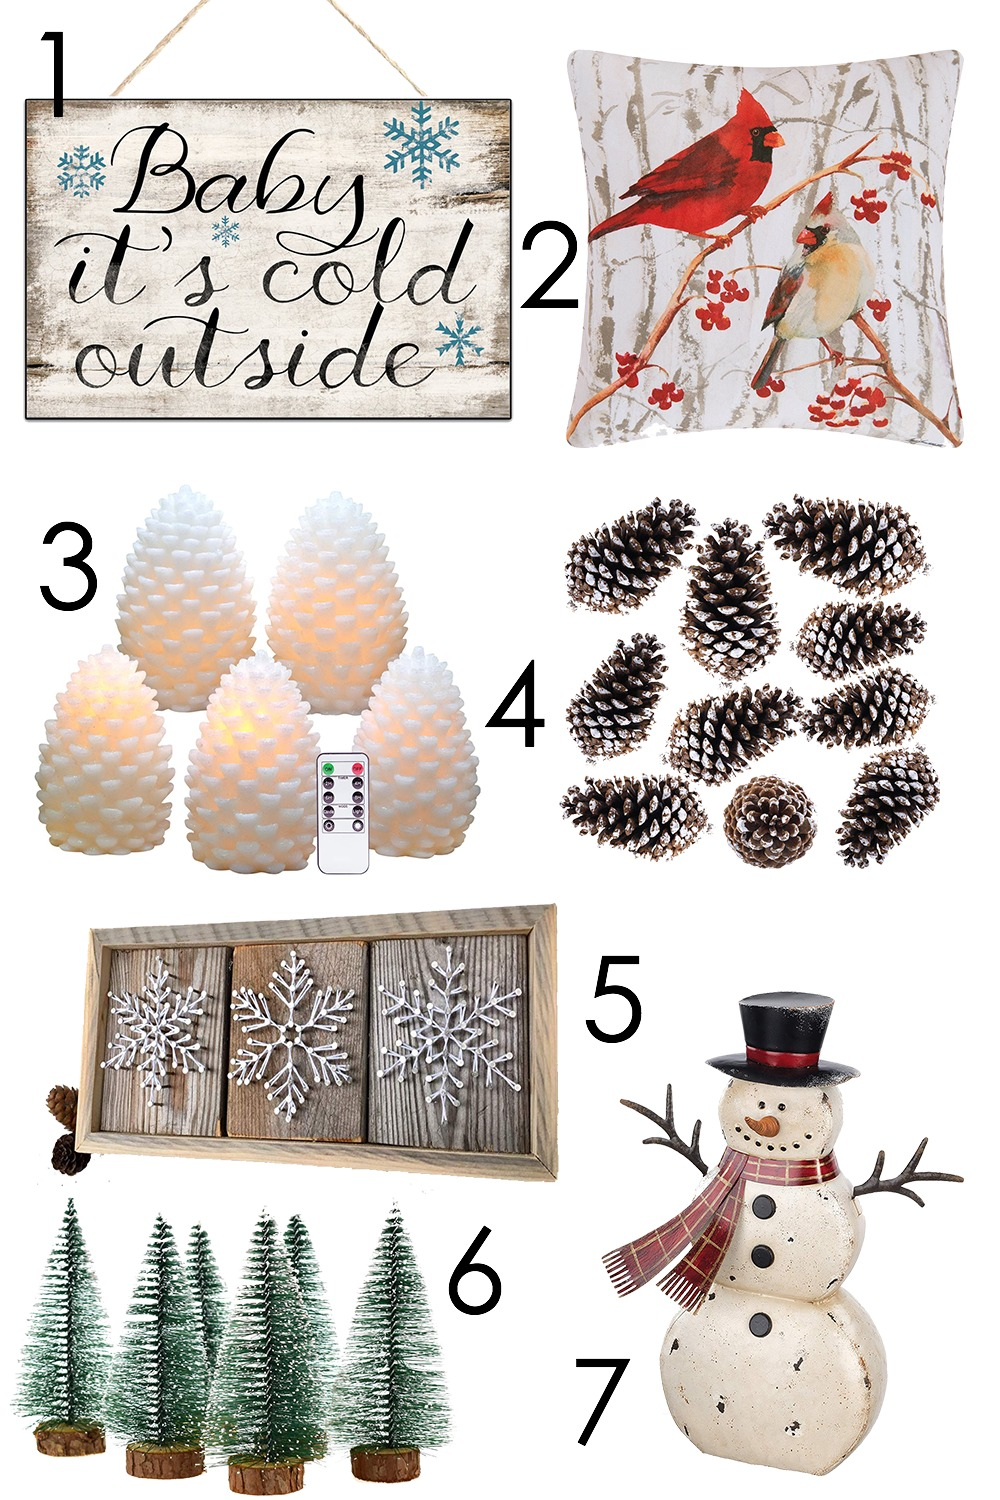 Cozy Winter Home Decor on Amazon to Lift Your Spirits I DreaminLace.com #HomeDecor #WinterDecor #CozyDecor #Cozy